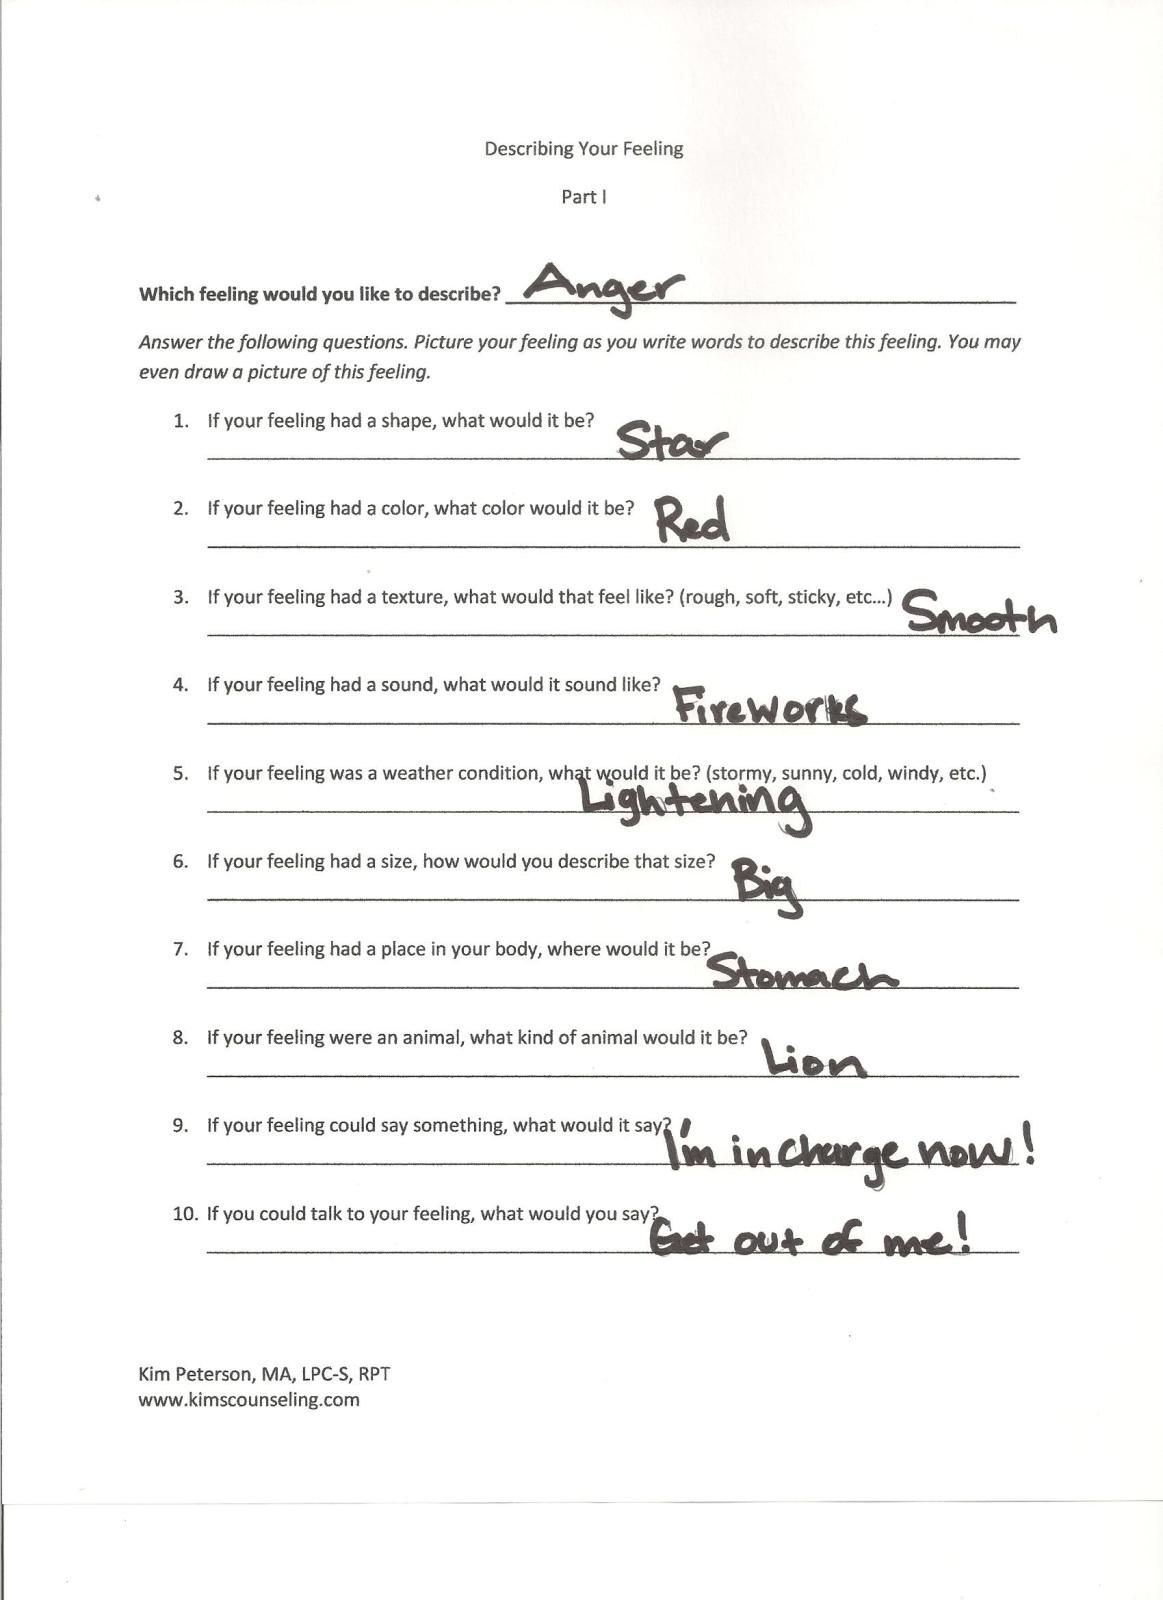 Worksheets Imagery Worksheet describing your feeling printable guided imagery worksheet social worksheet